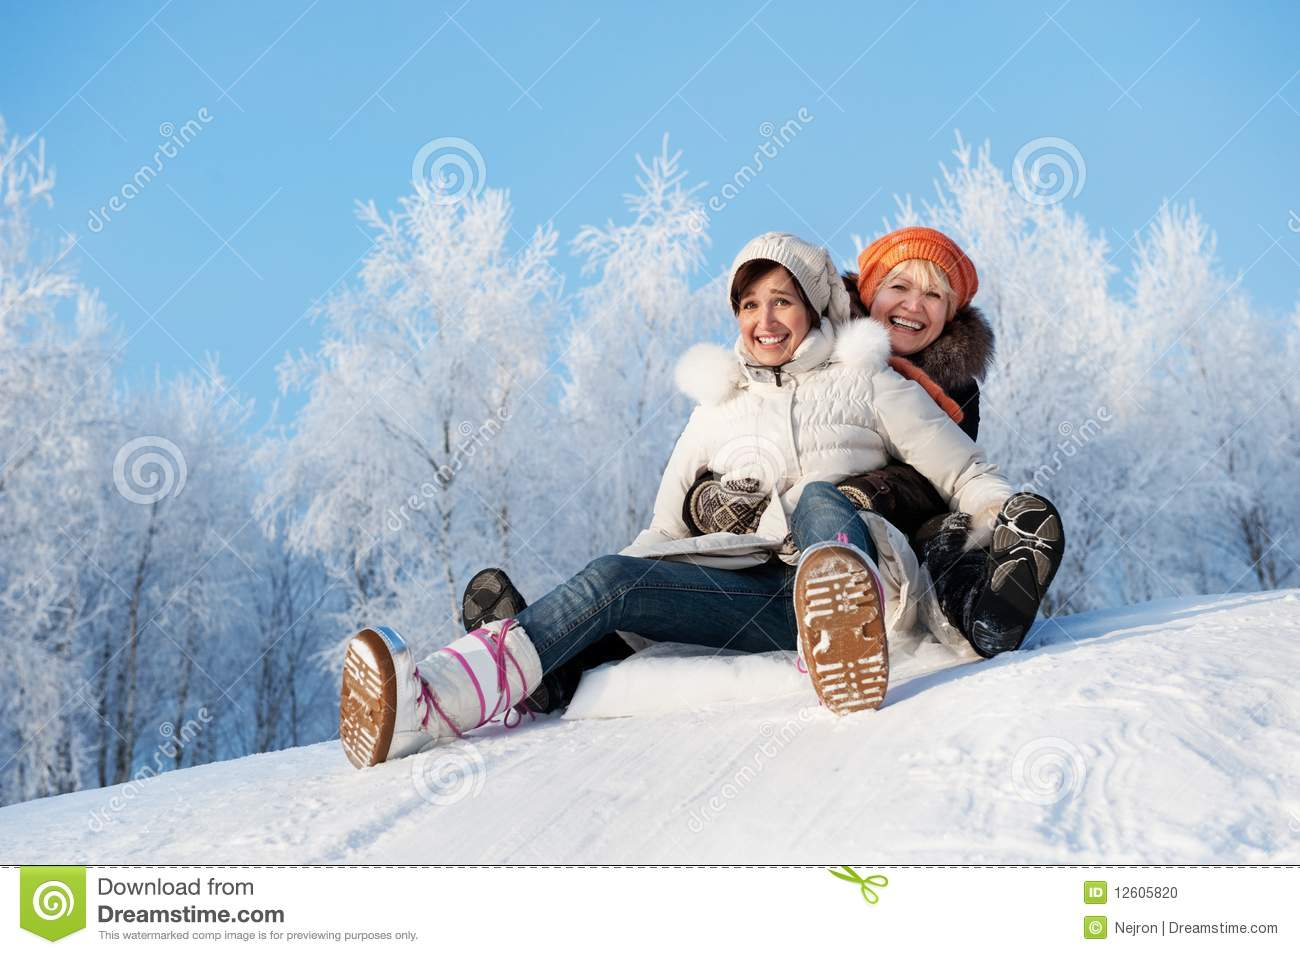 Mother and daughter sliding in the snow